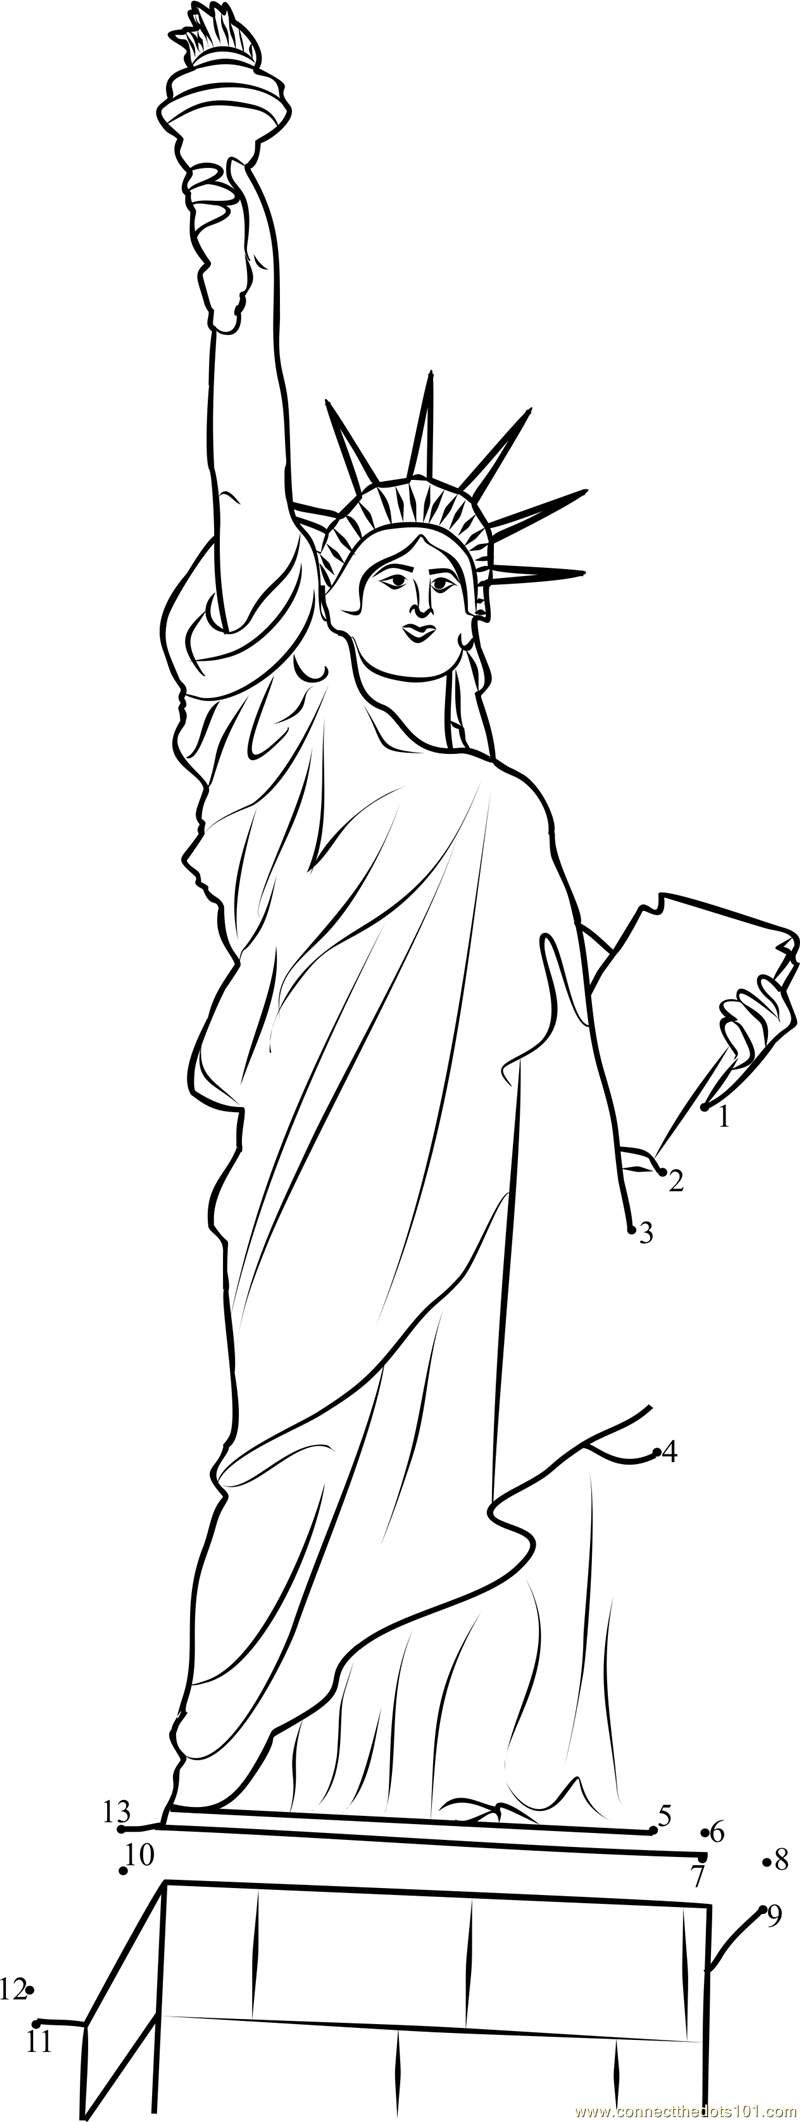 statue of liberty coloring pages - statue of liberty dot to dot printable worksheet connect